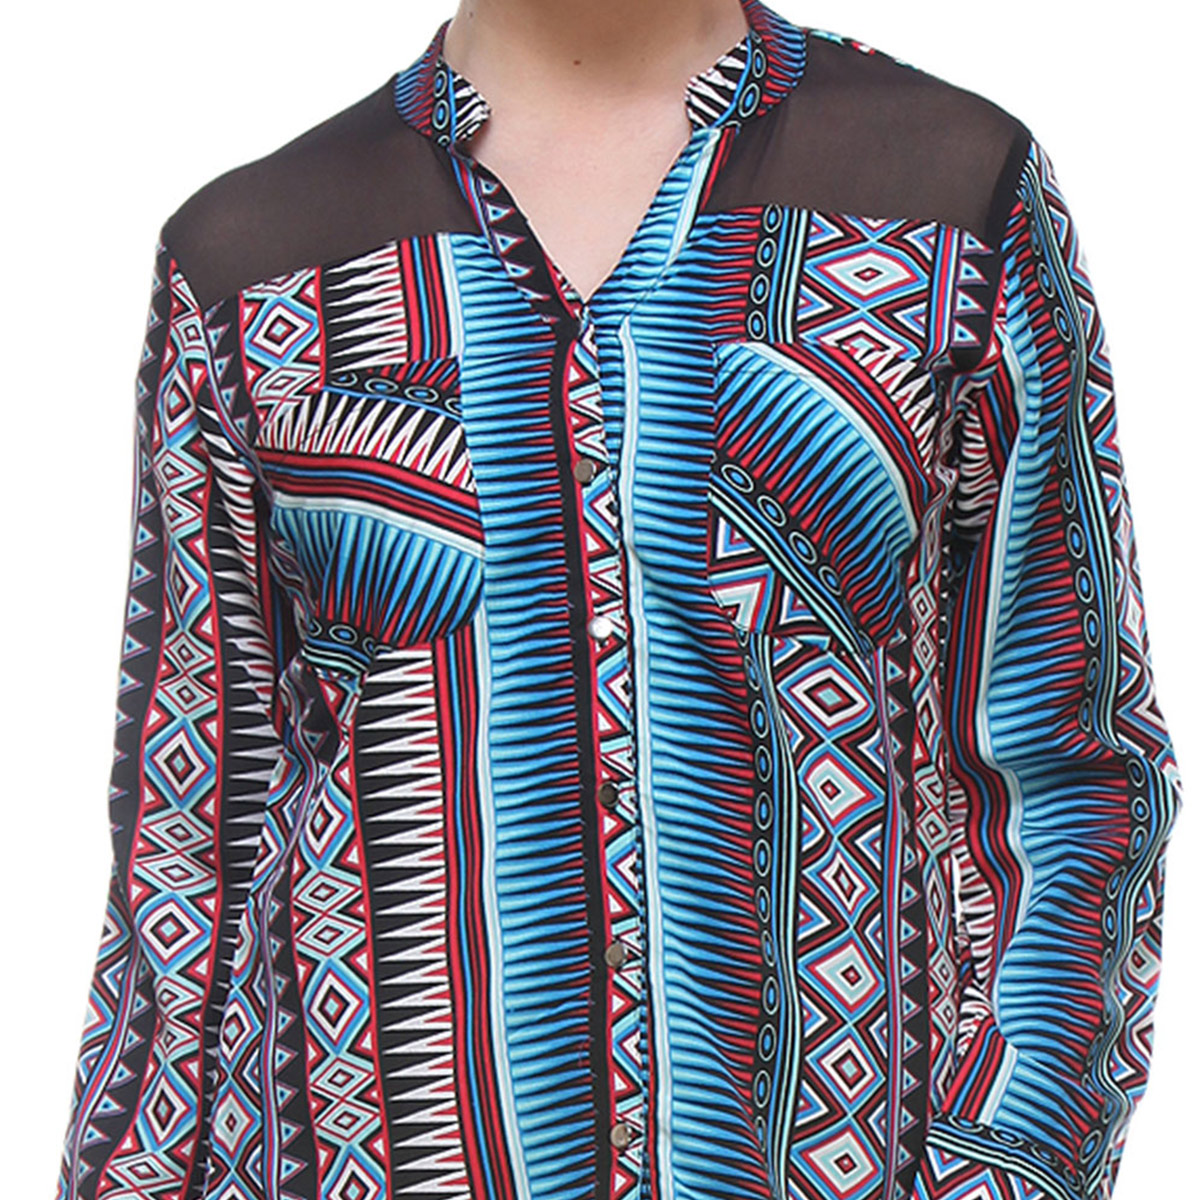 Black Colored Cotton Tribal Print Top